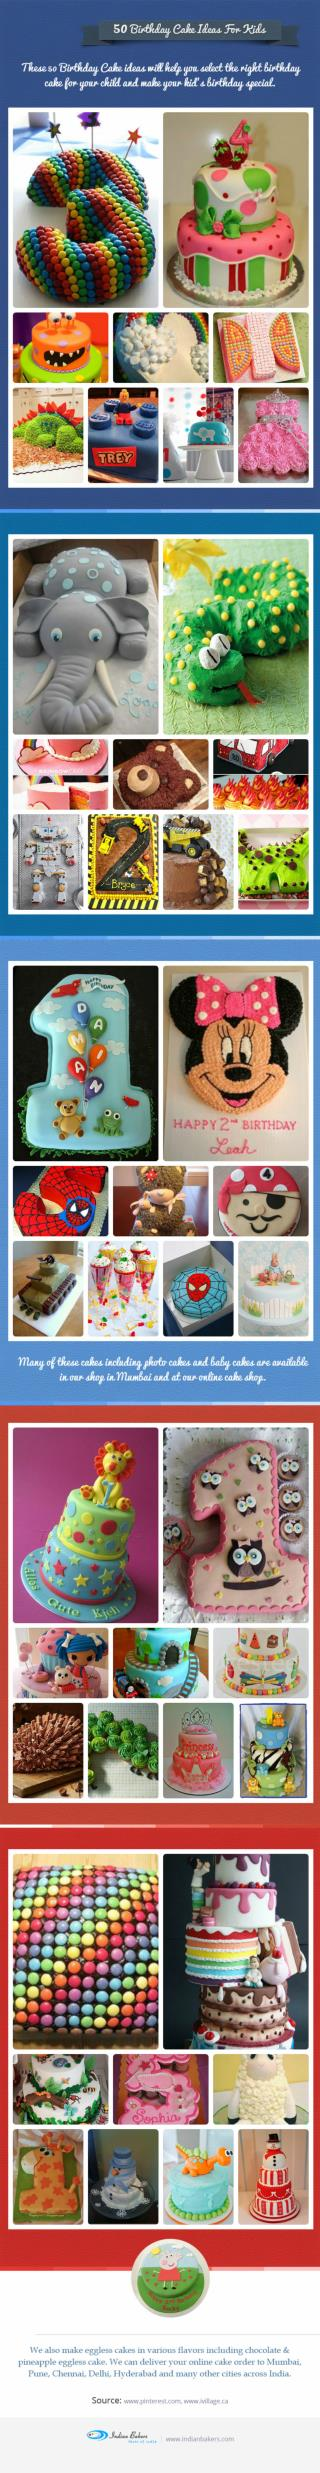 50 Birthday Cake Ideas For Kids | Baby Cakes Online